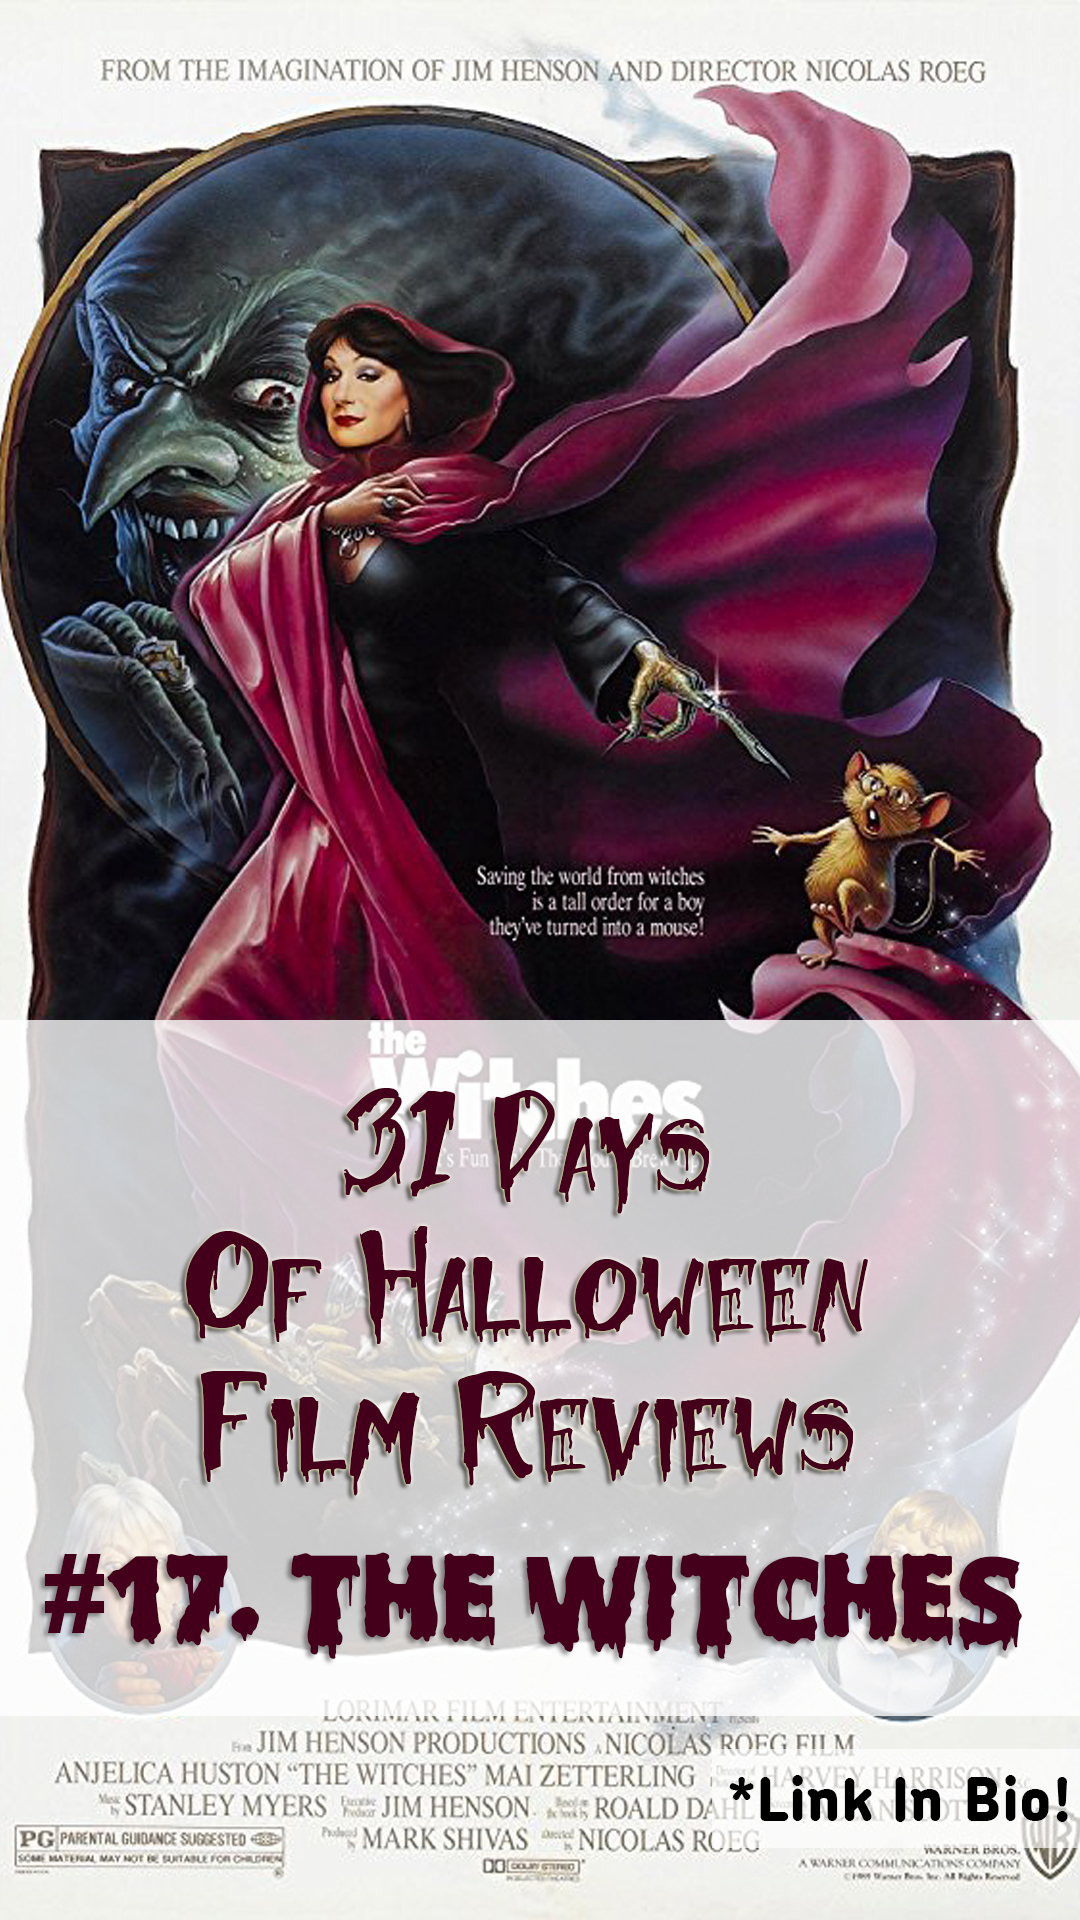 The Witches Film Review